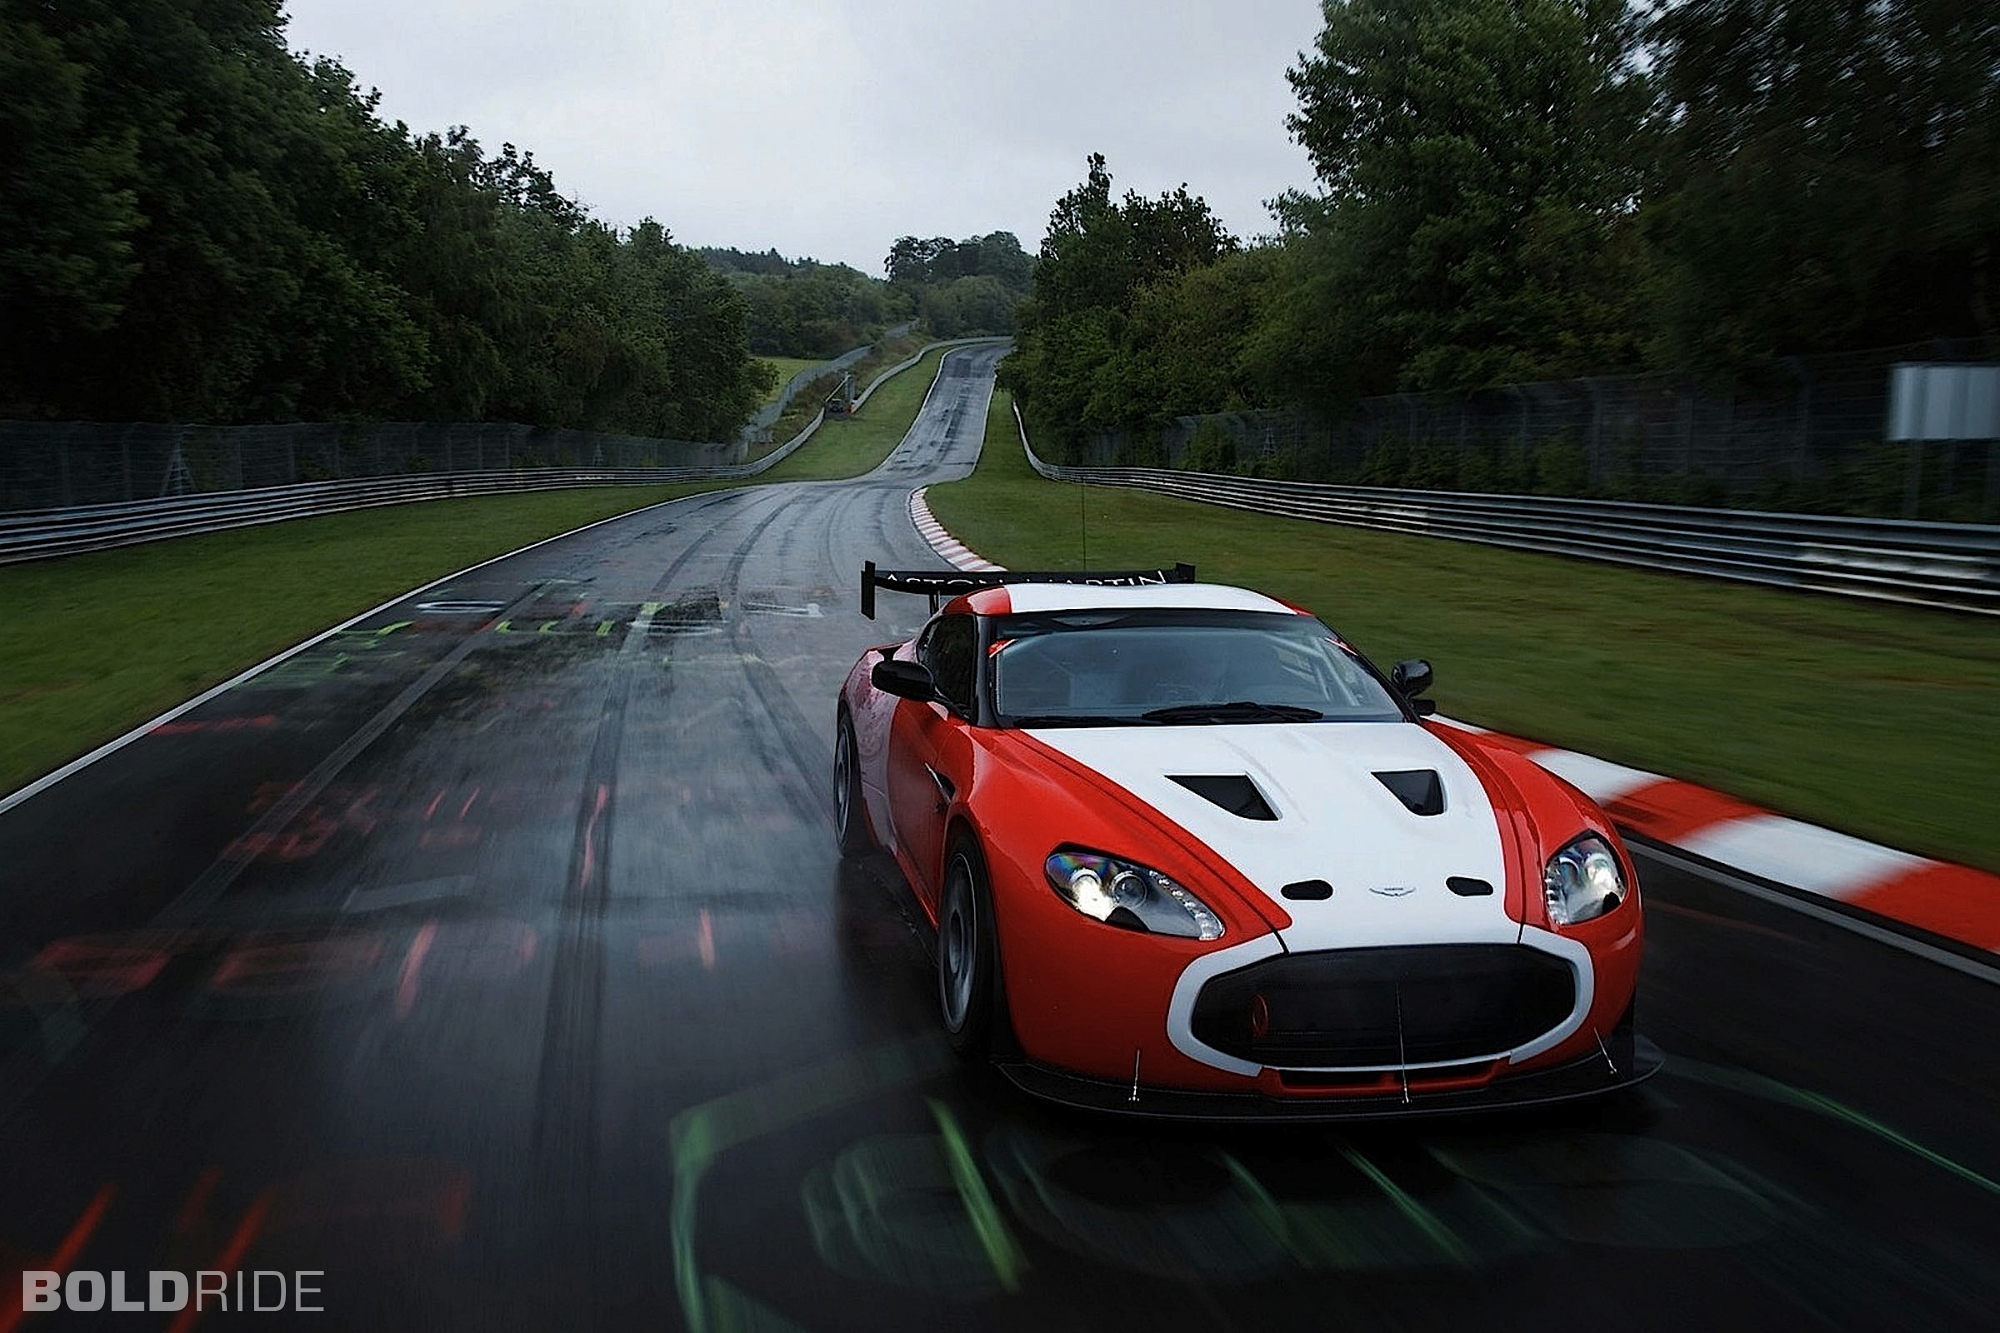 2011 Aston Martin V12 Zagato Race Car 1600 x 1200